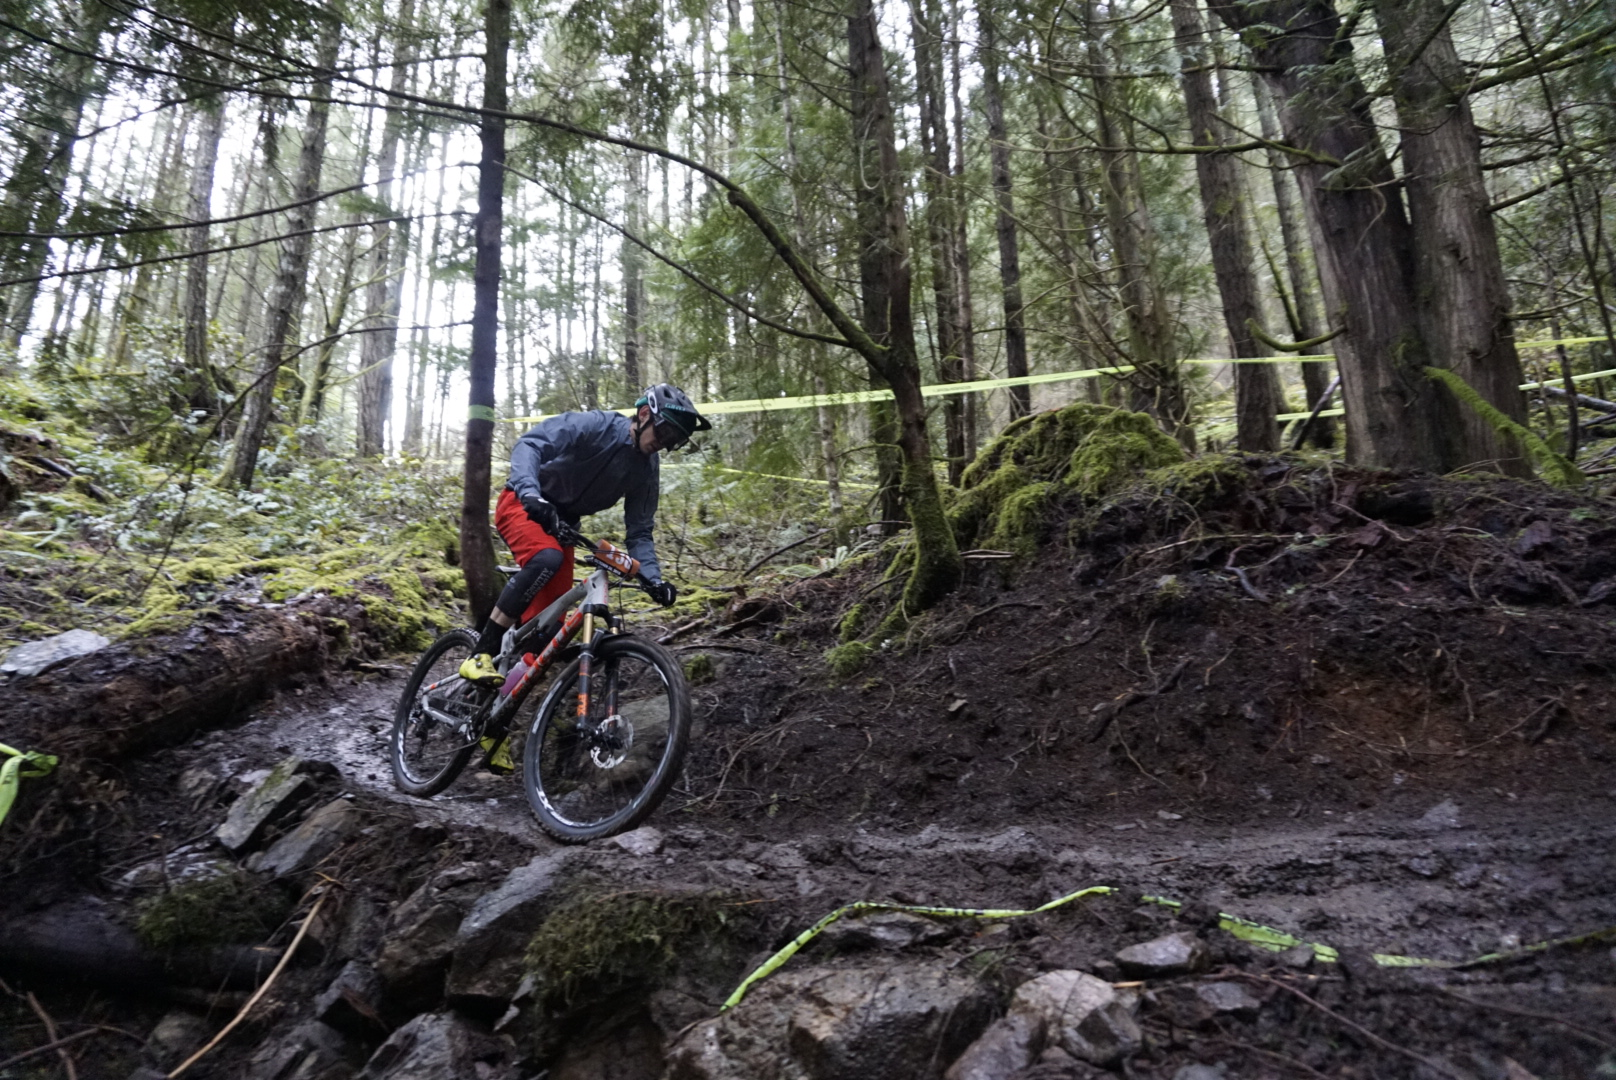 THIS is why I love Vancouver Island. Amazing trails, and epic forests.